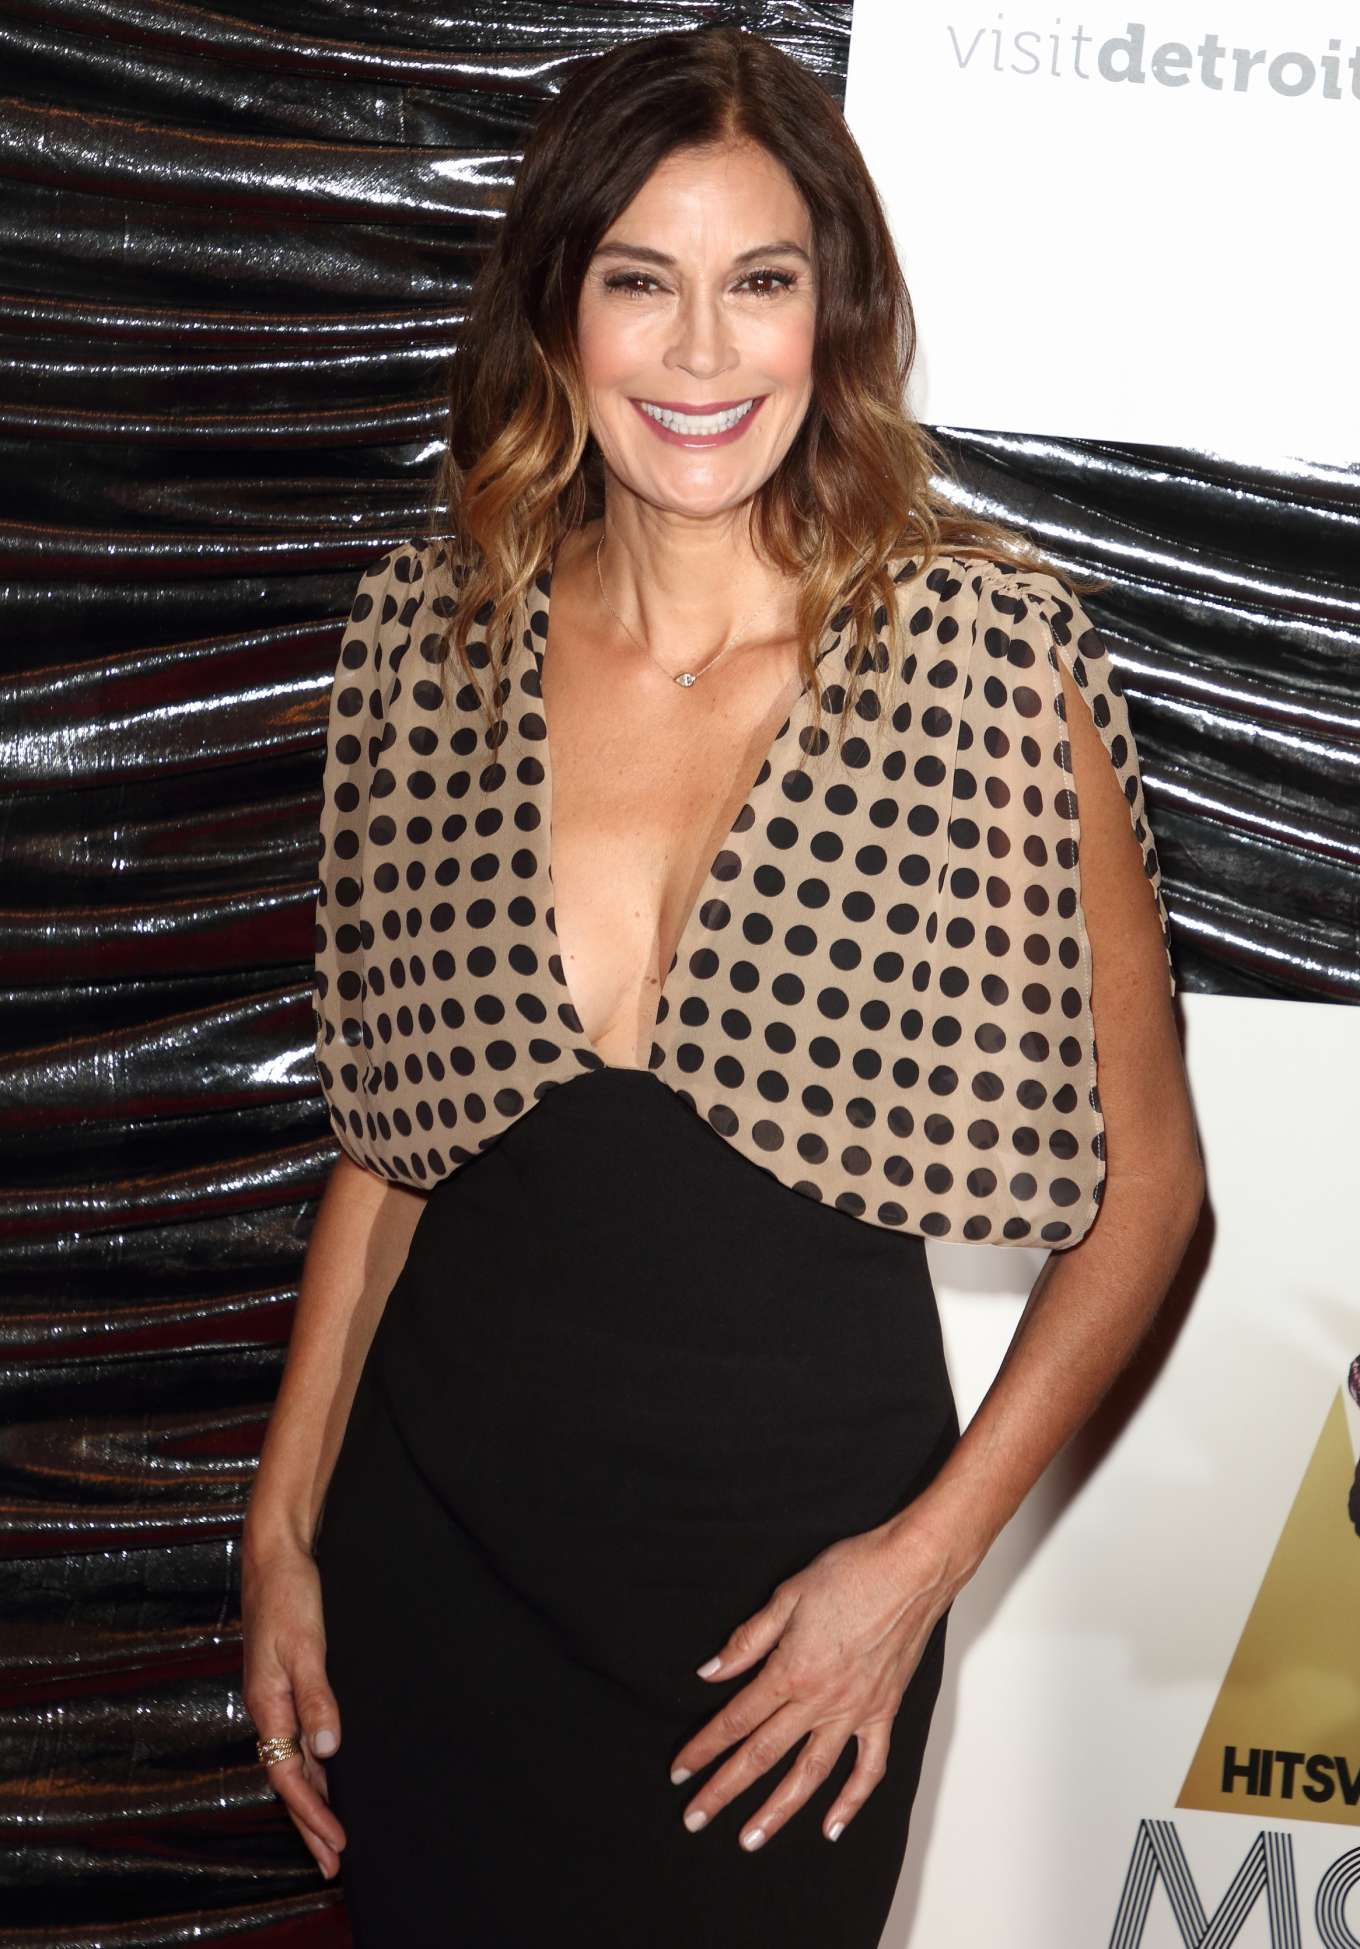 Teri Hatcher - 'Hitsville:The Making of Motown' Premiere in London